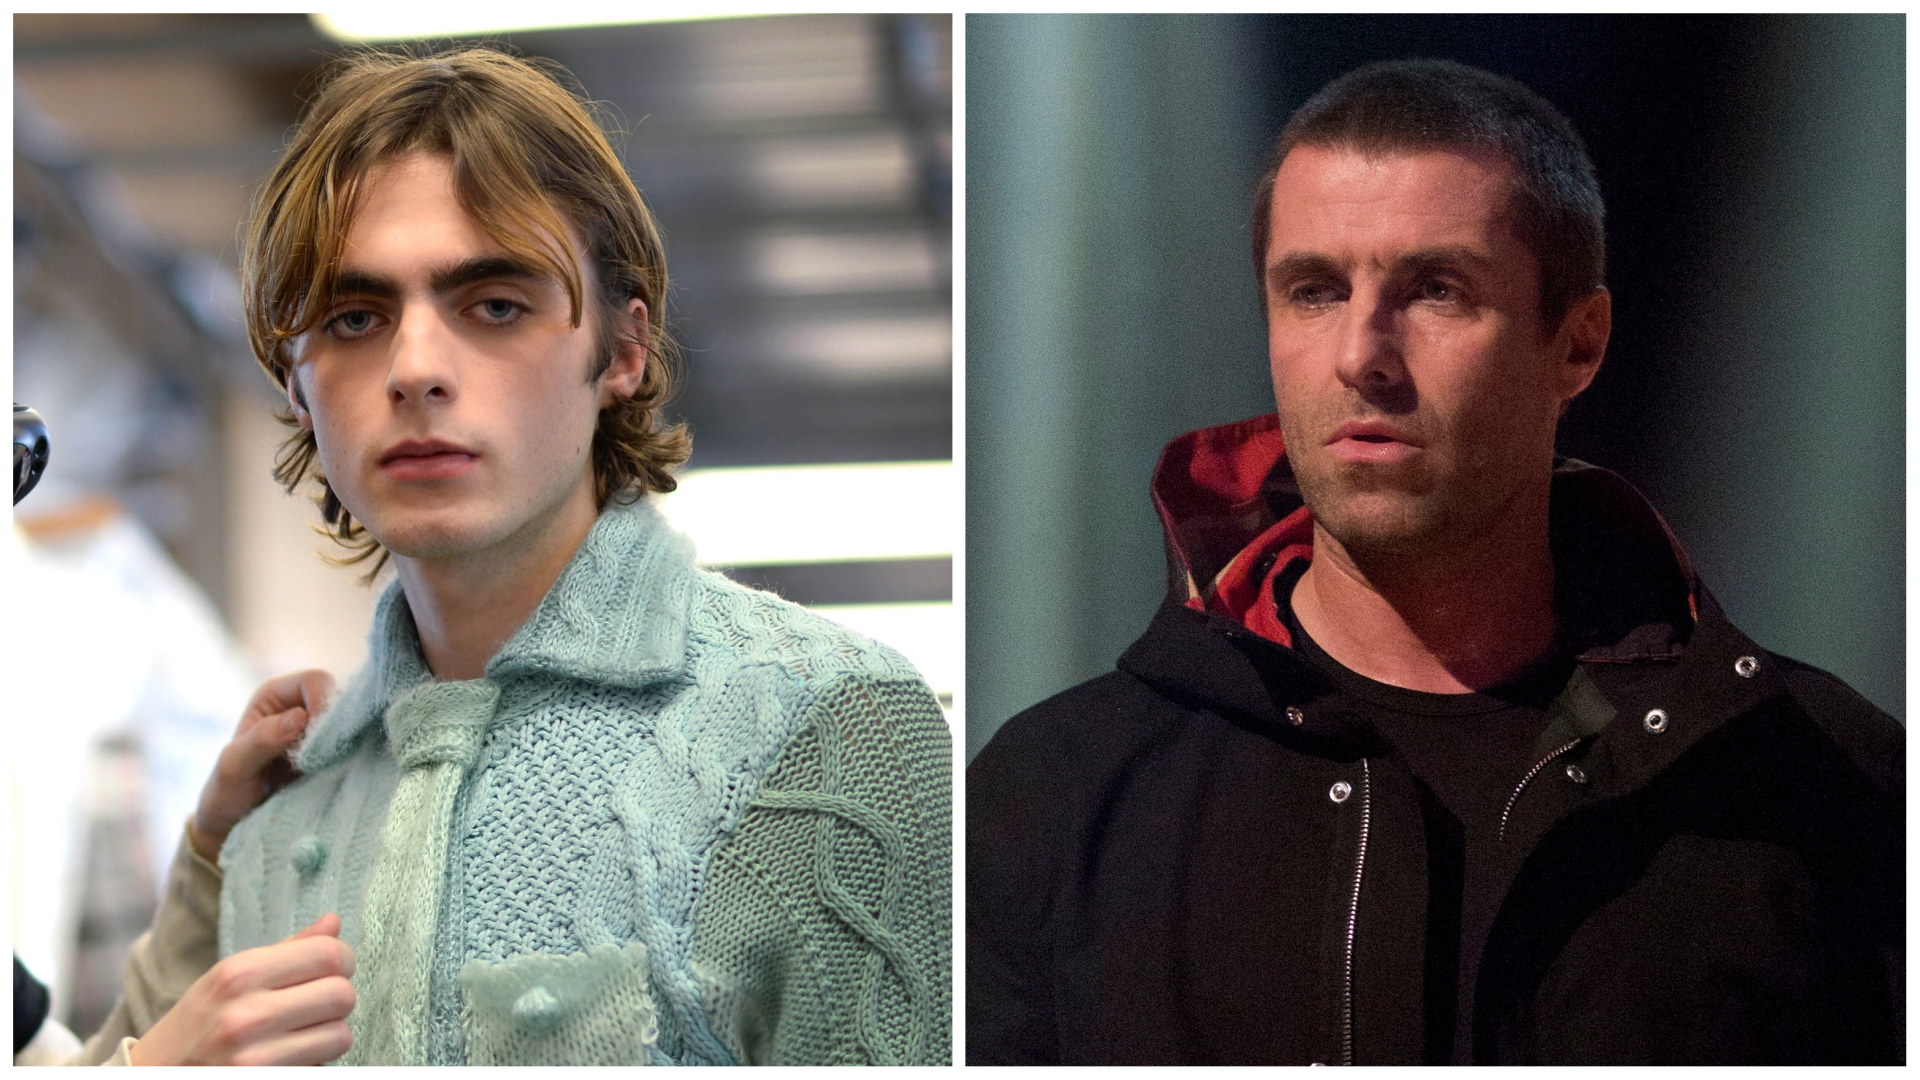 Liam Gallagher's lookalike son Lennon models futuristic ...